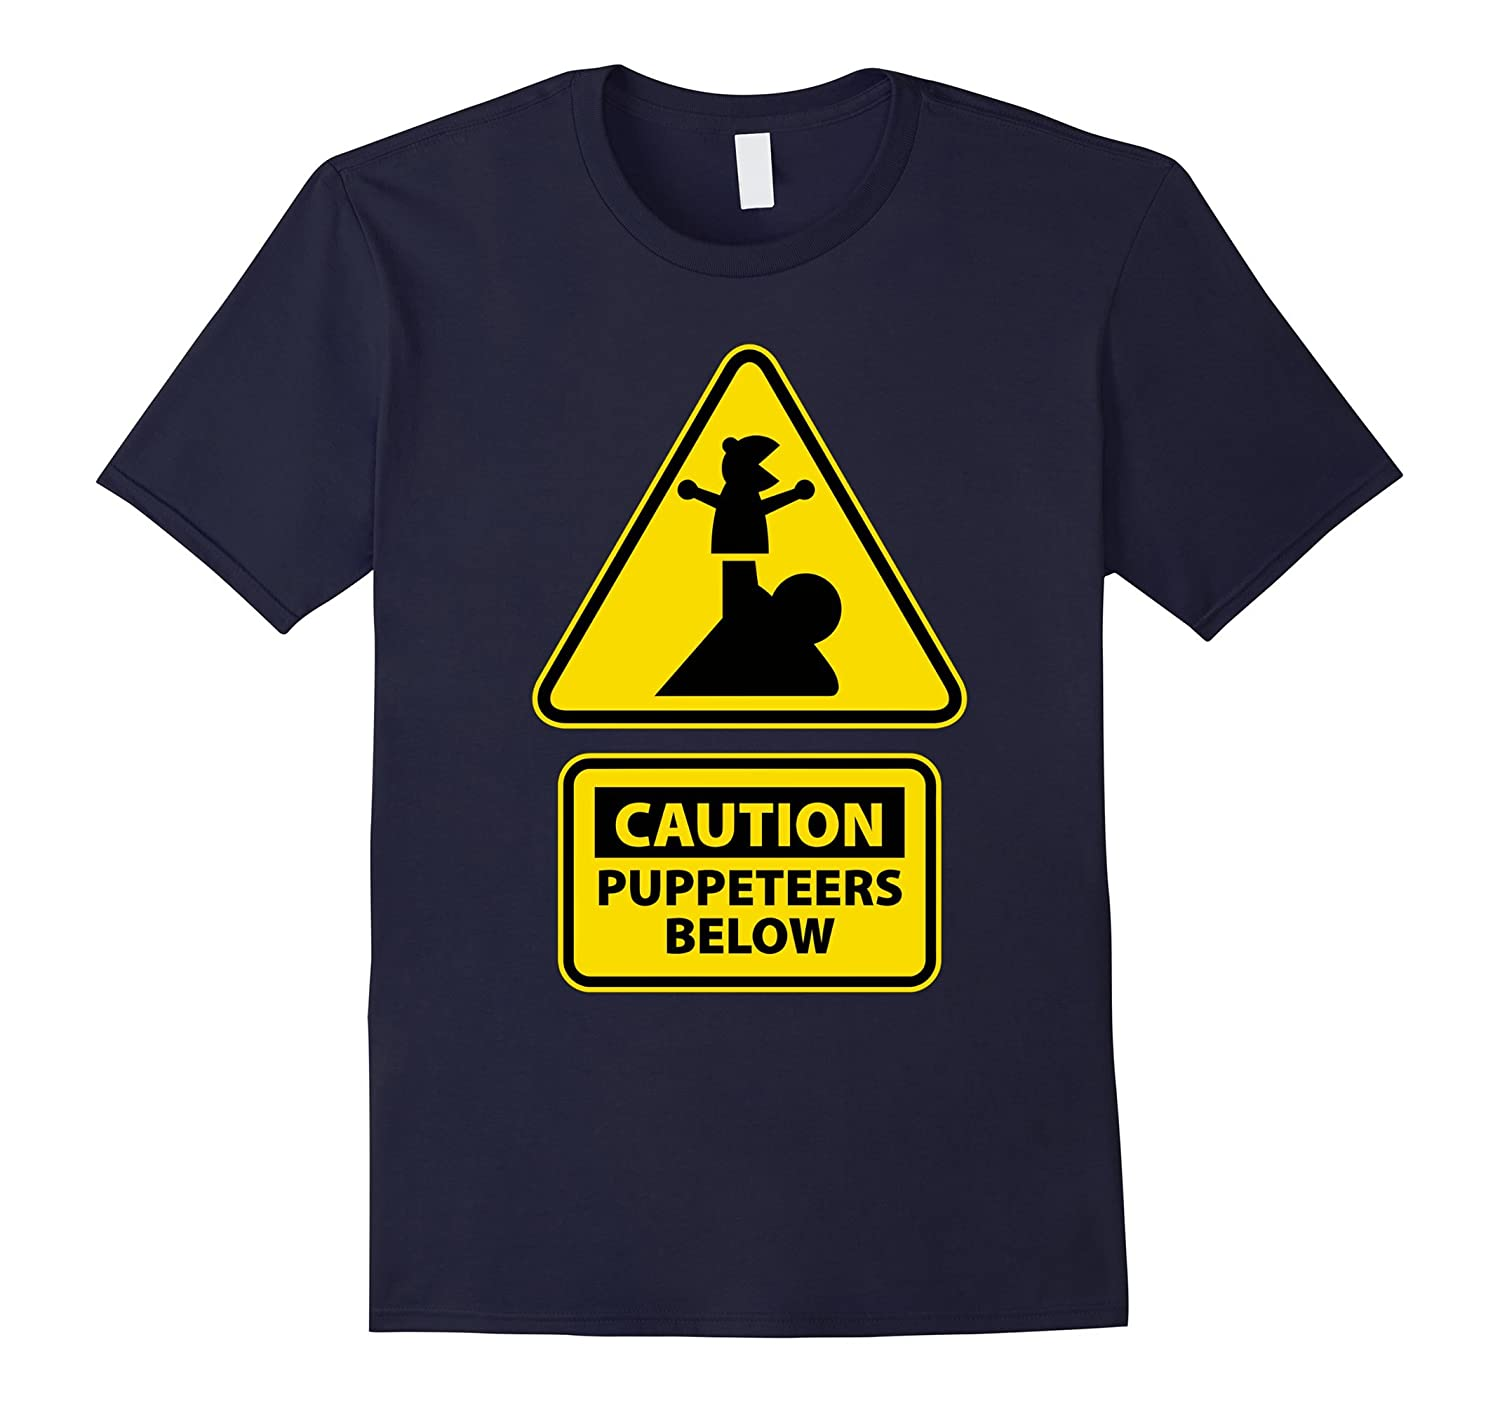 Caution Puppeteers Below T-Shirt-BN